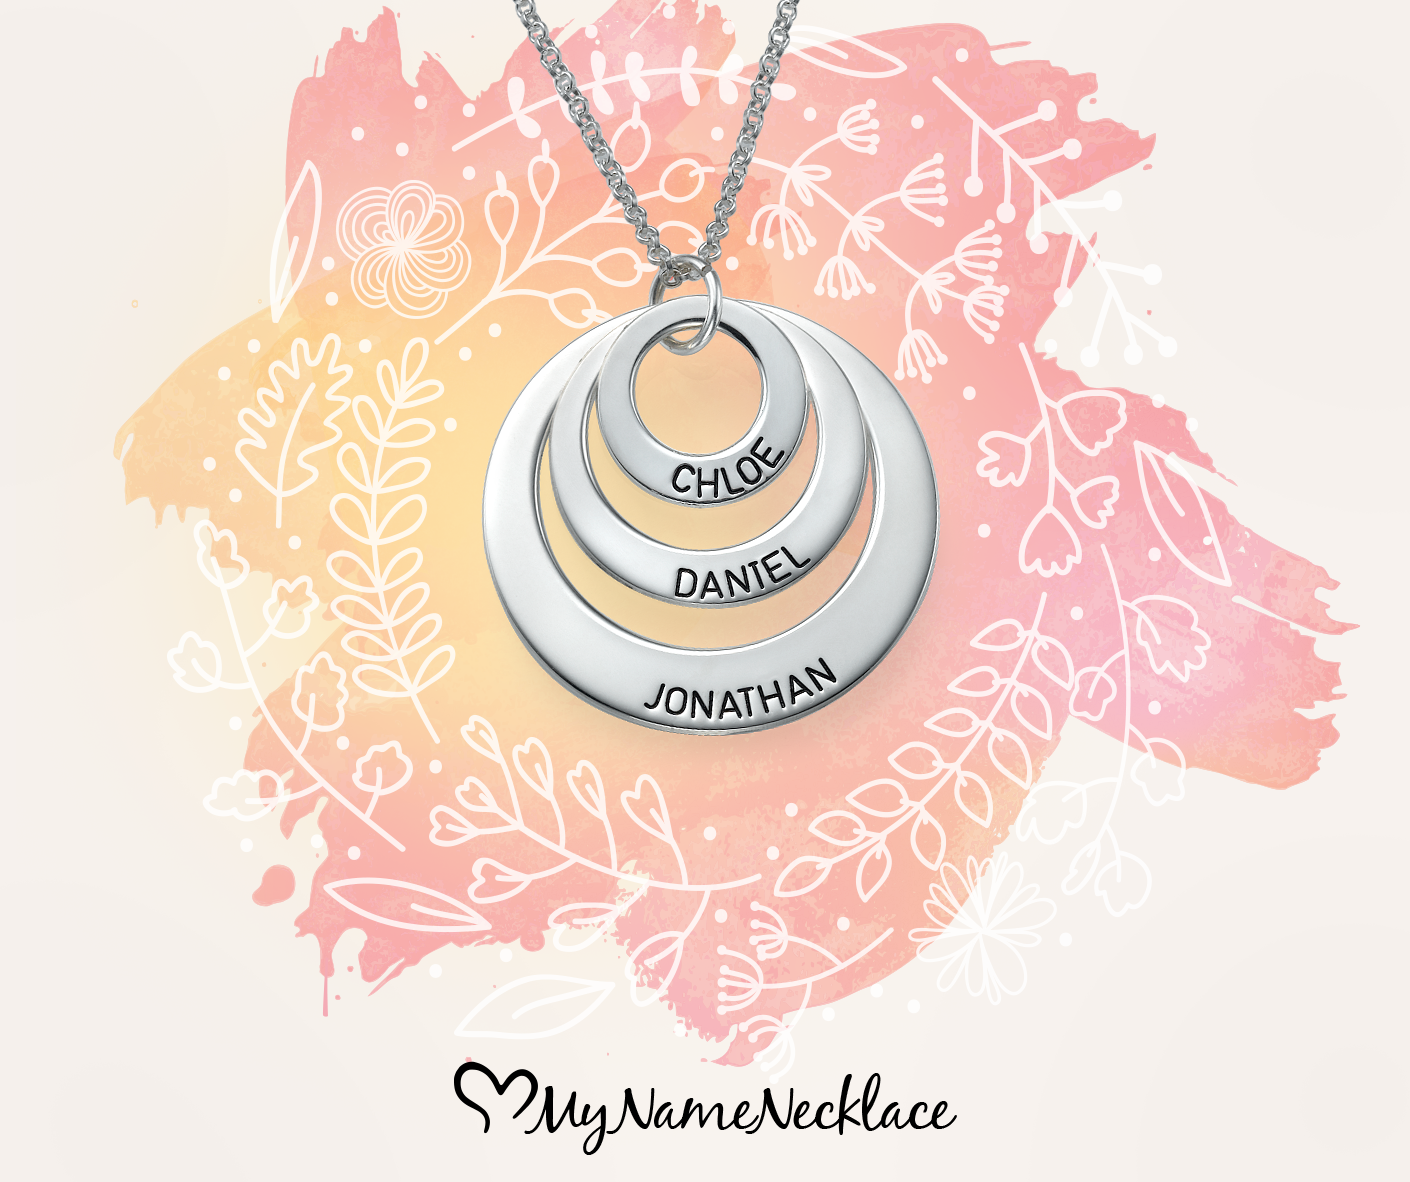 You've seen our Two Disc Necklace for Moms and now we have Jewelry for Moms - Three Disc Necklace. Our Mother's Day jewelry is super popular.